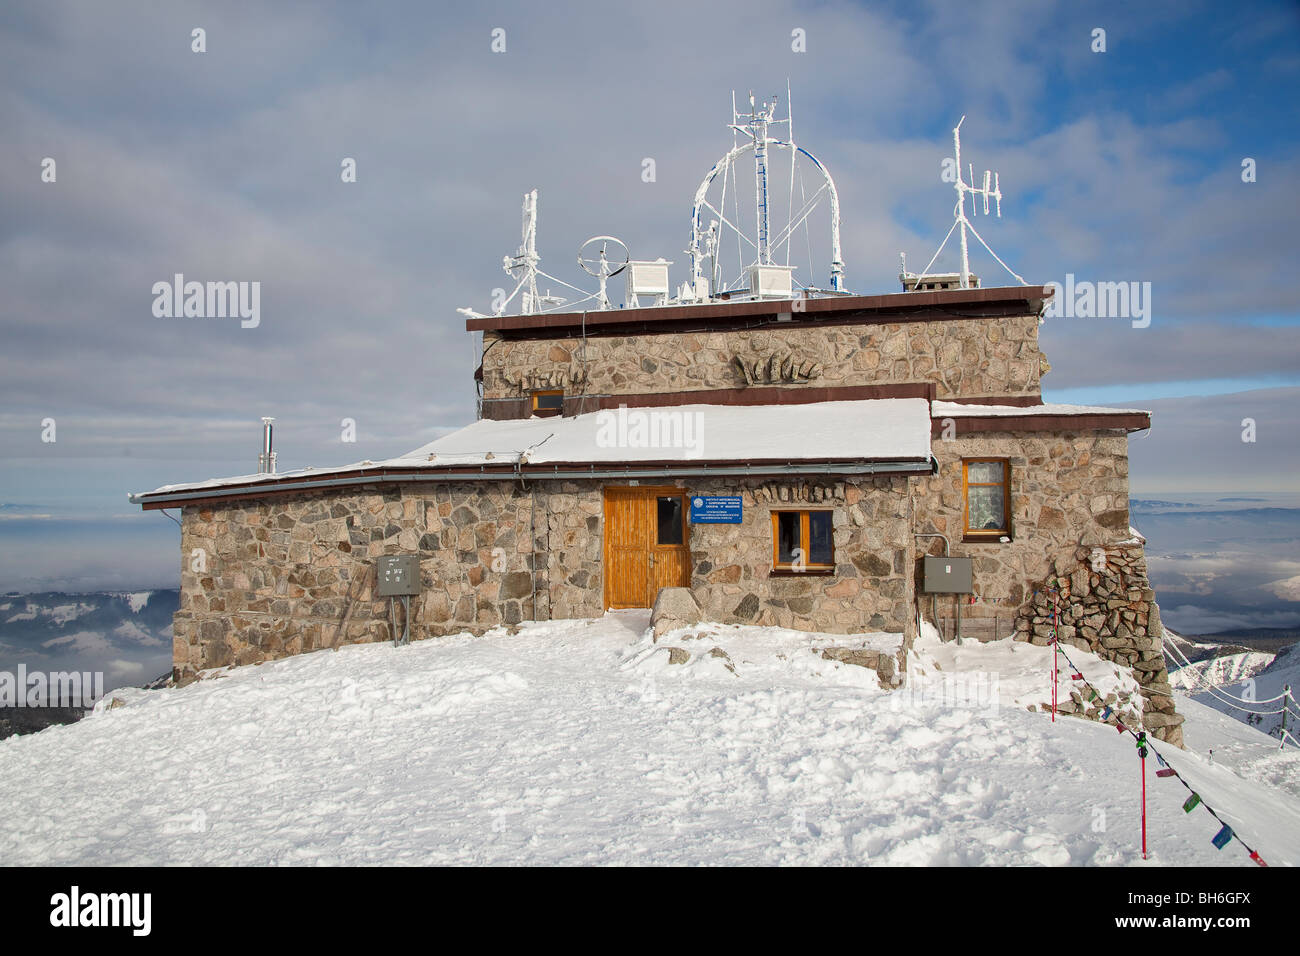 Meteorological observatory station on mountain summit, Kasprowy Wierch, Poland - Stock Image